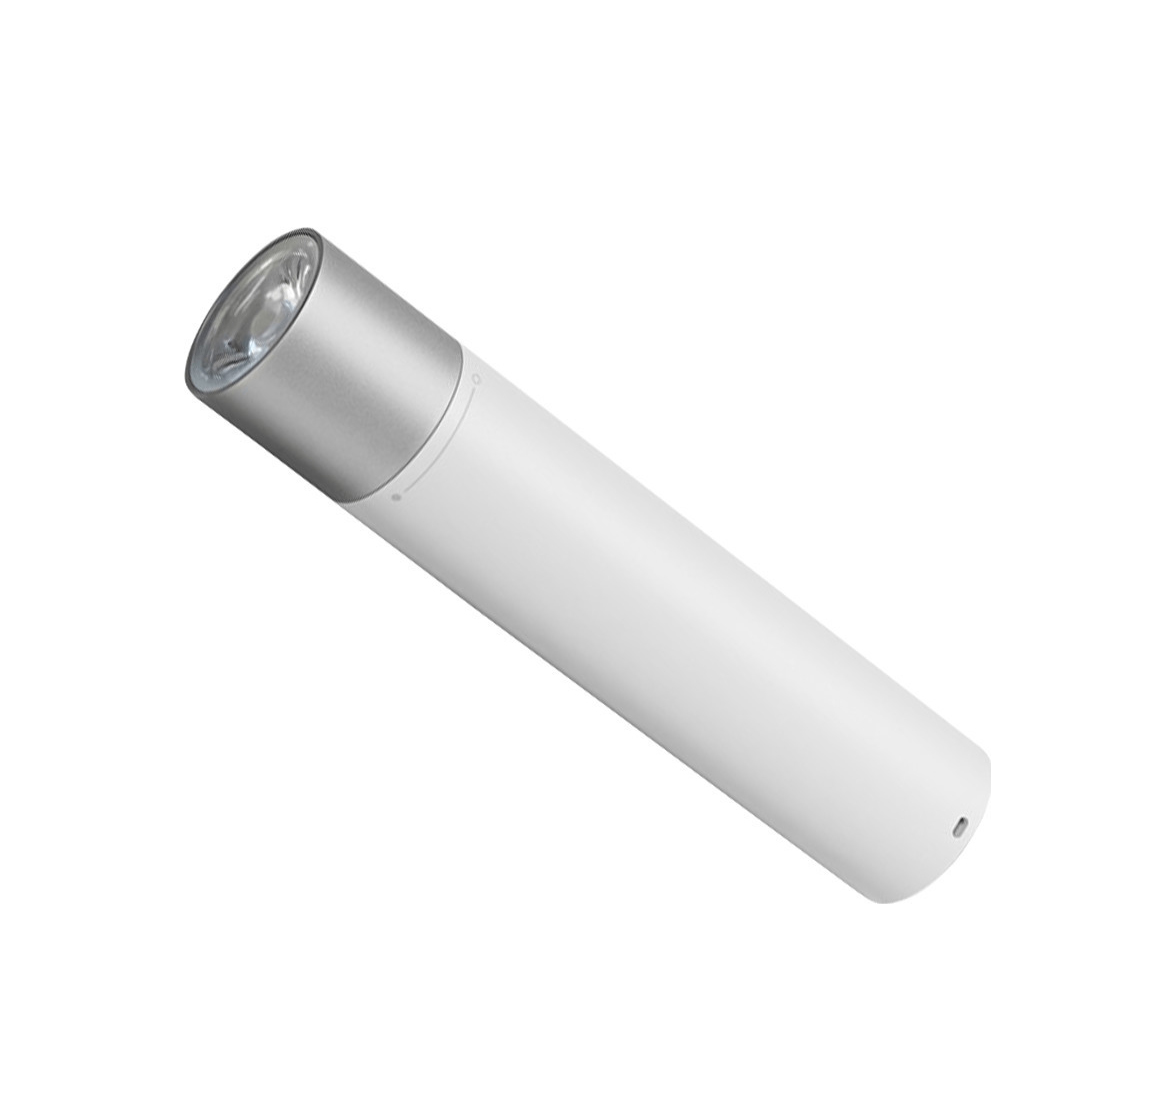 Xiaomi Mi Power Bank FlashLight 3250mAh White